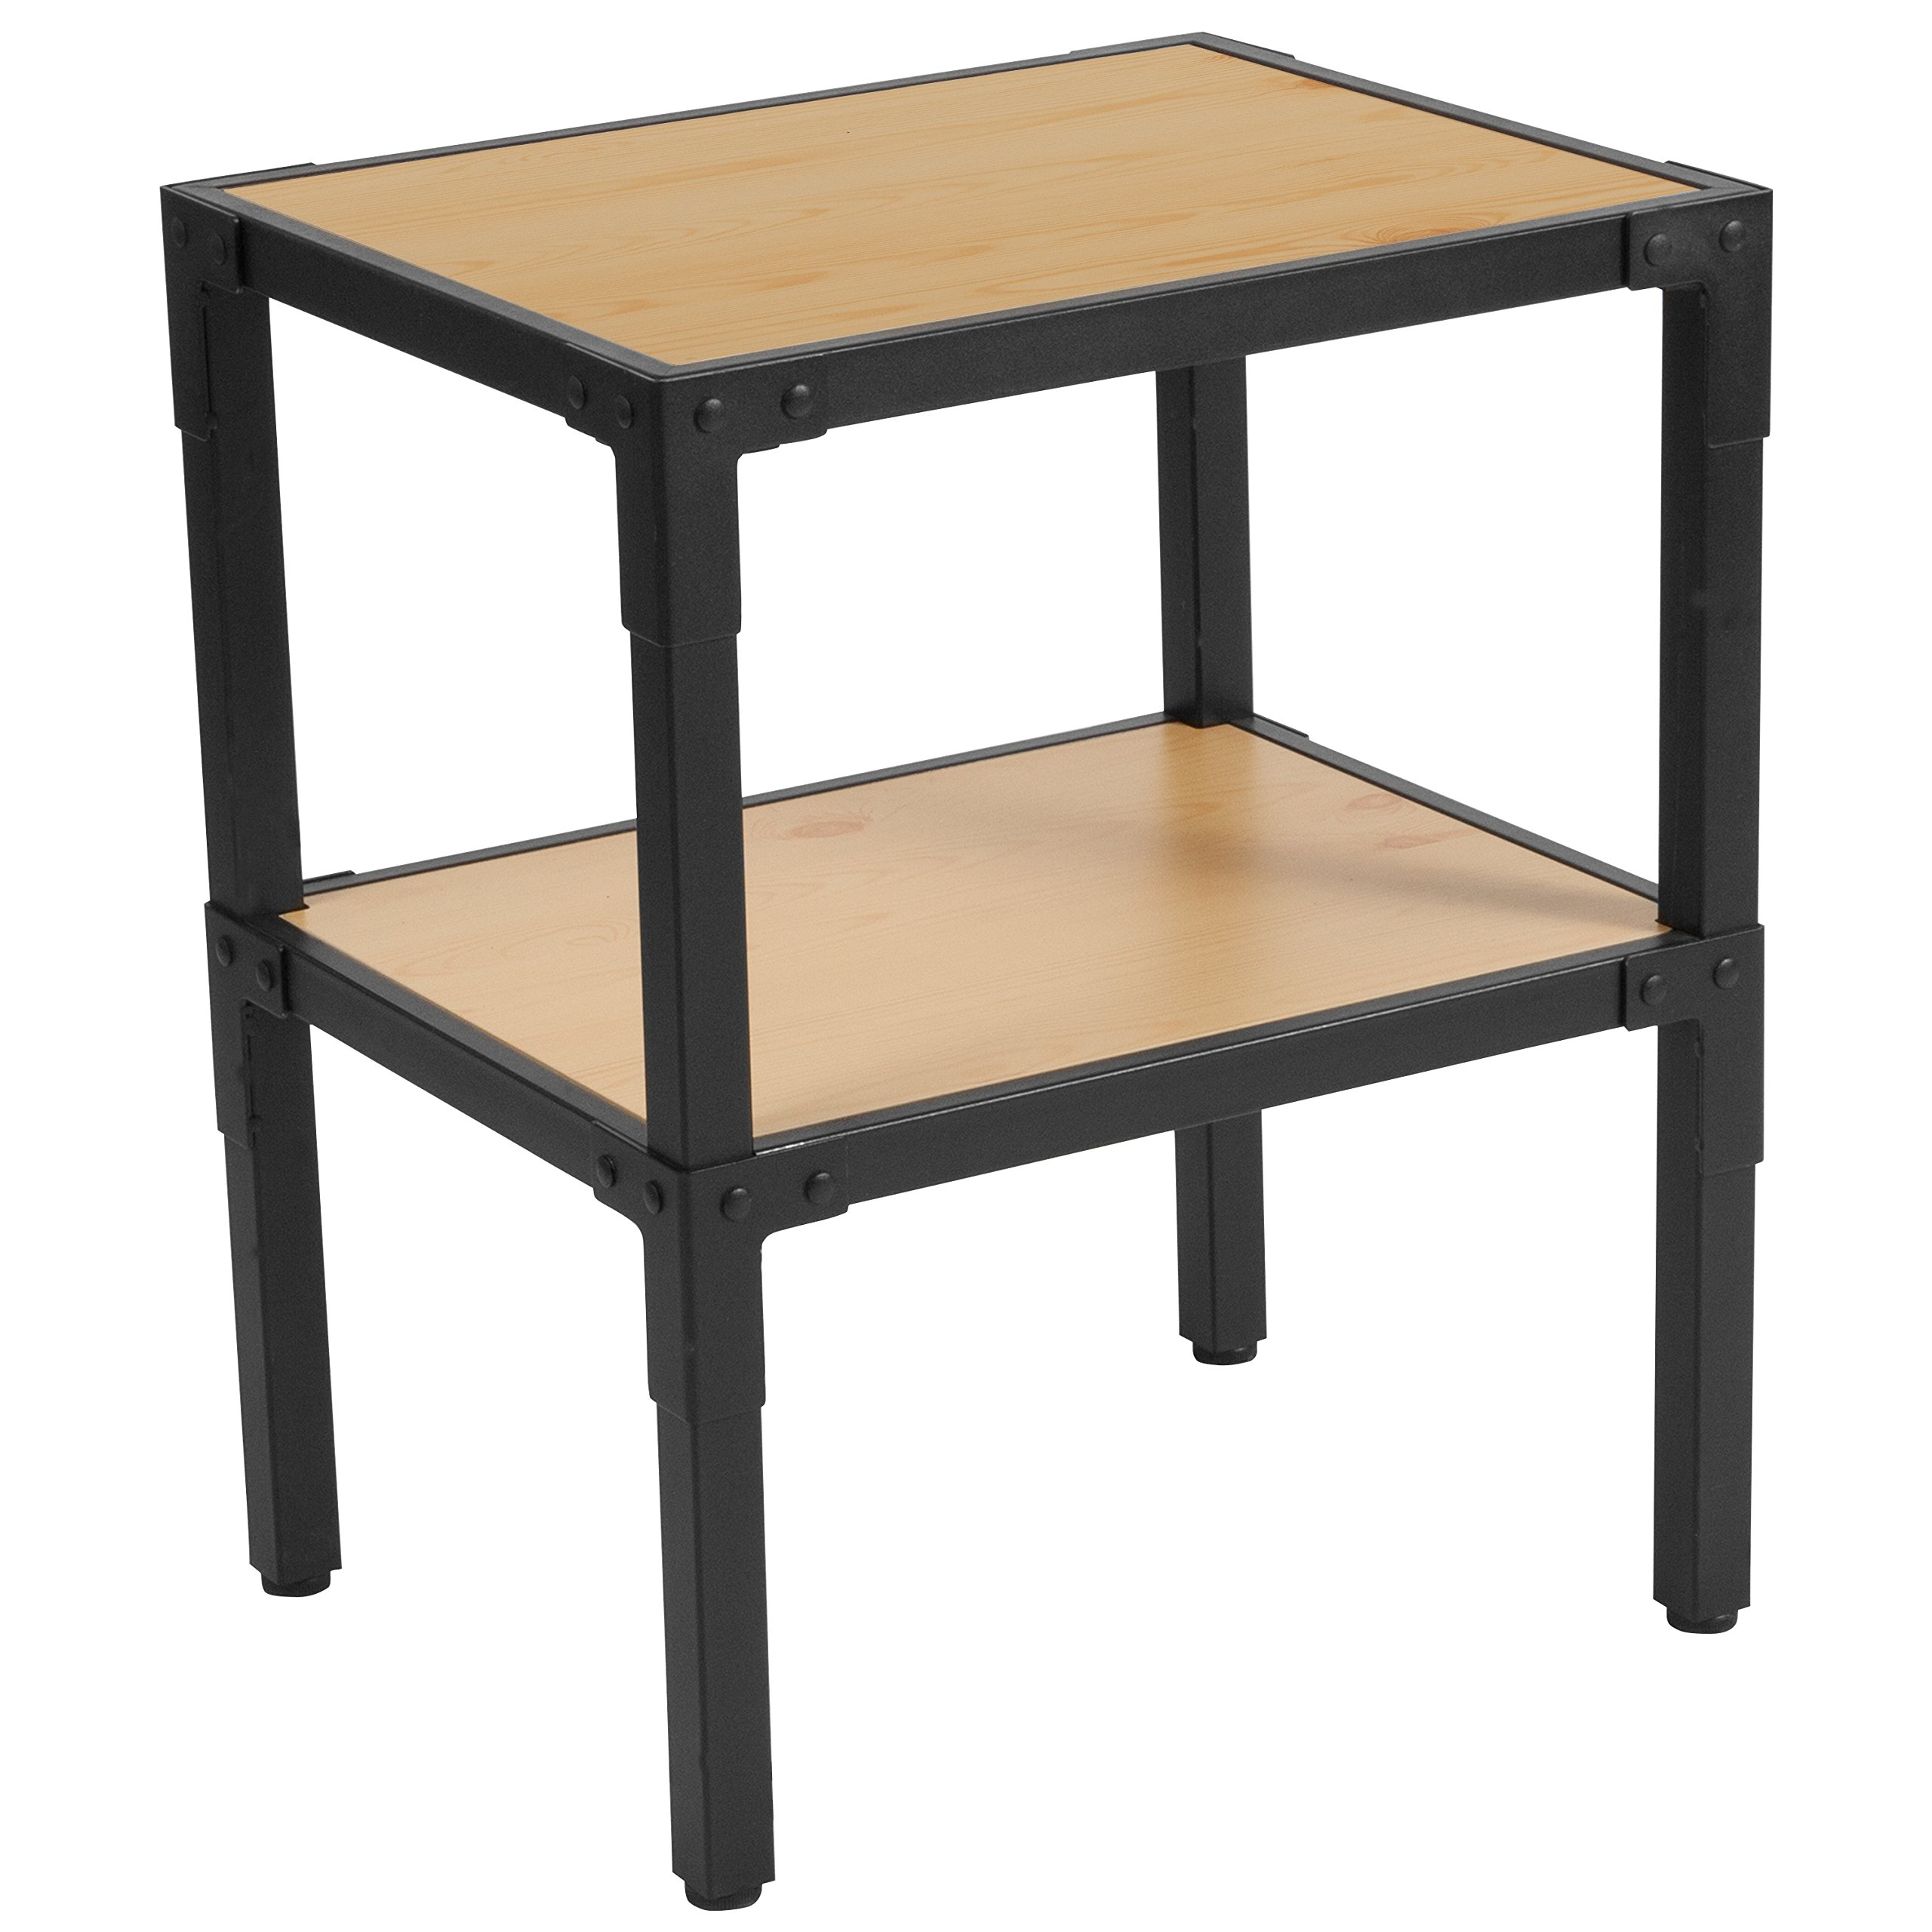 Flash Furniture Holmby Collection Knotted Pine Wood Grain Finish Side Table with Black Metal Legs